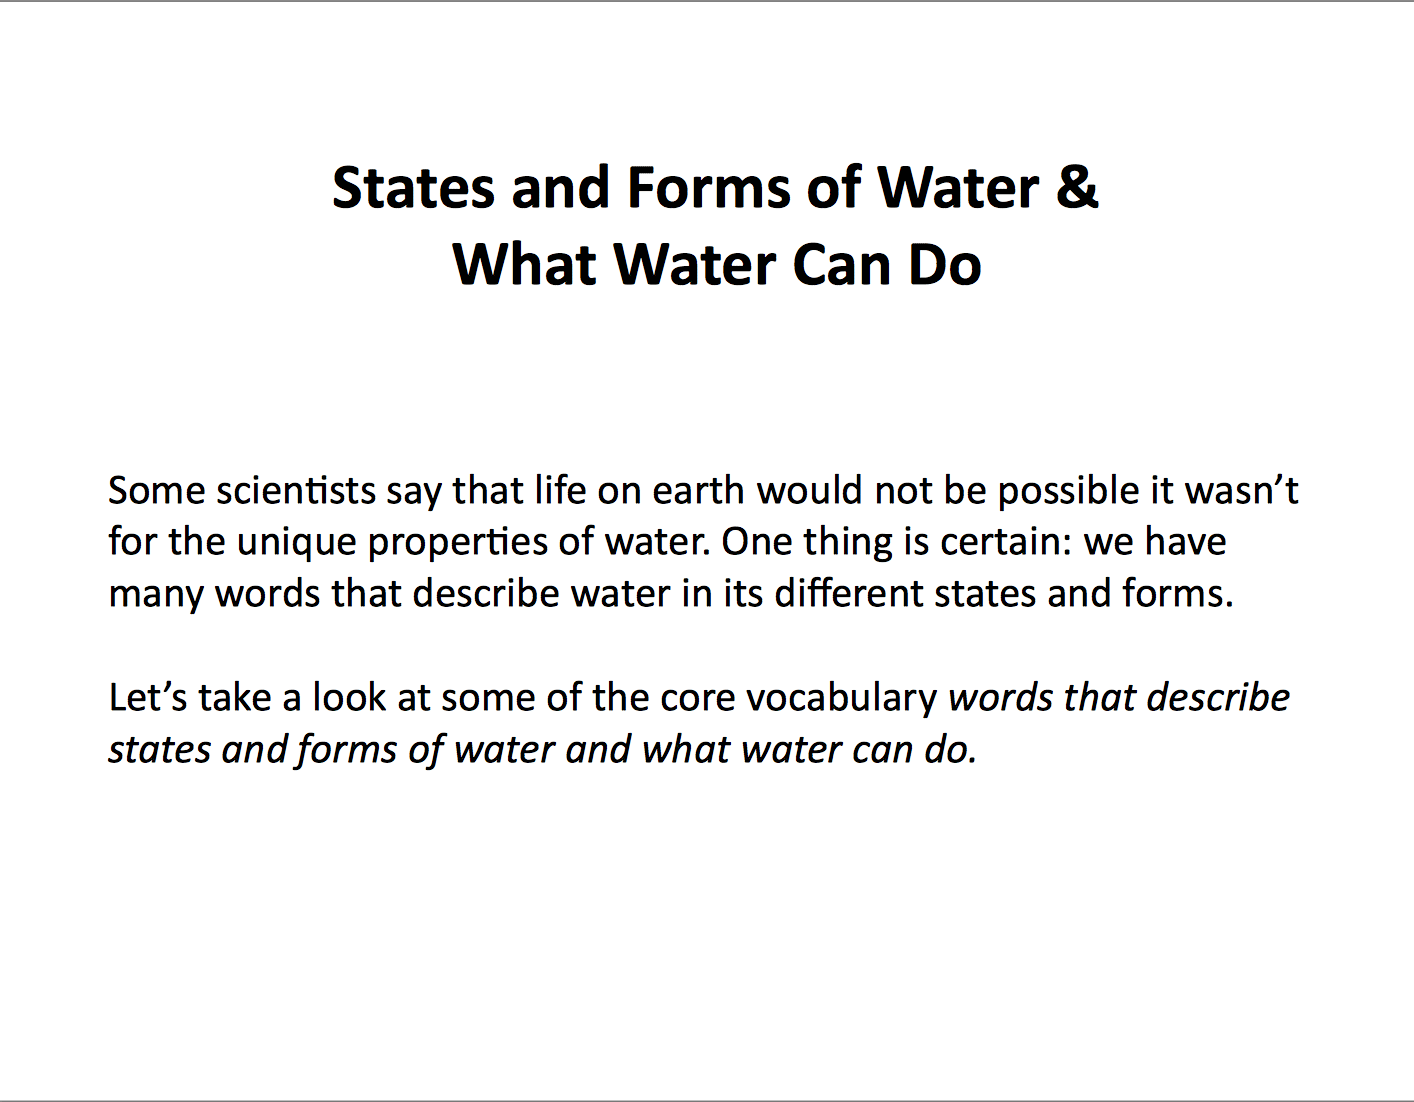 States and forms of water